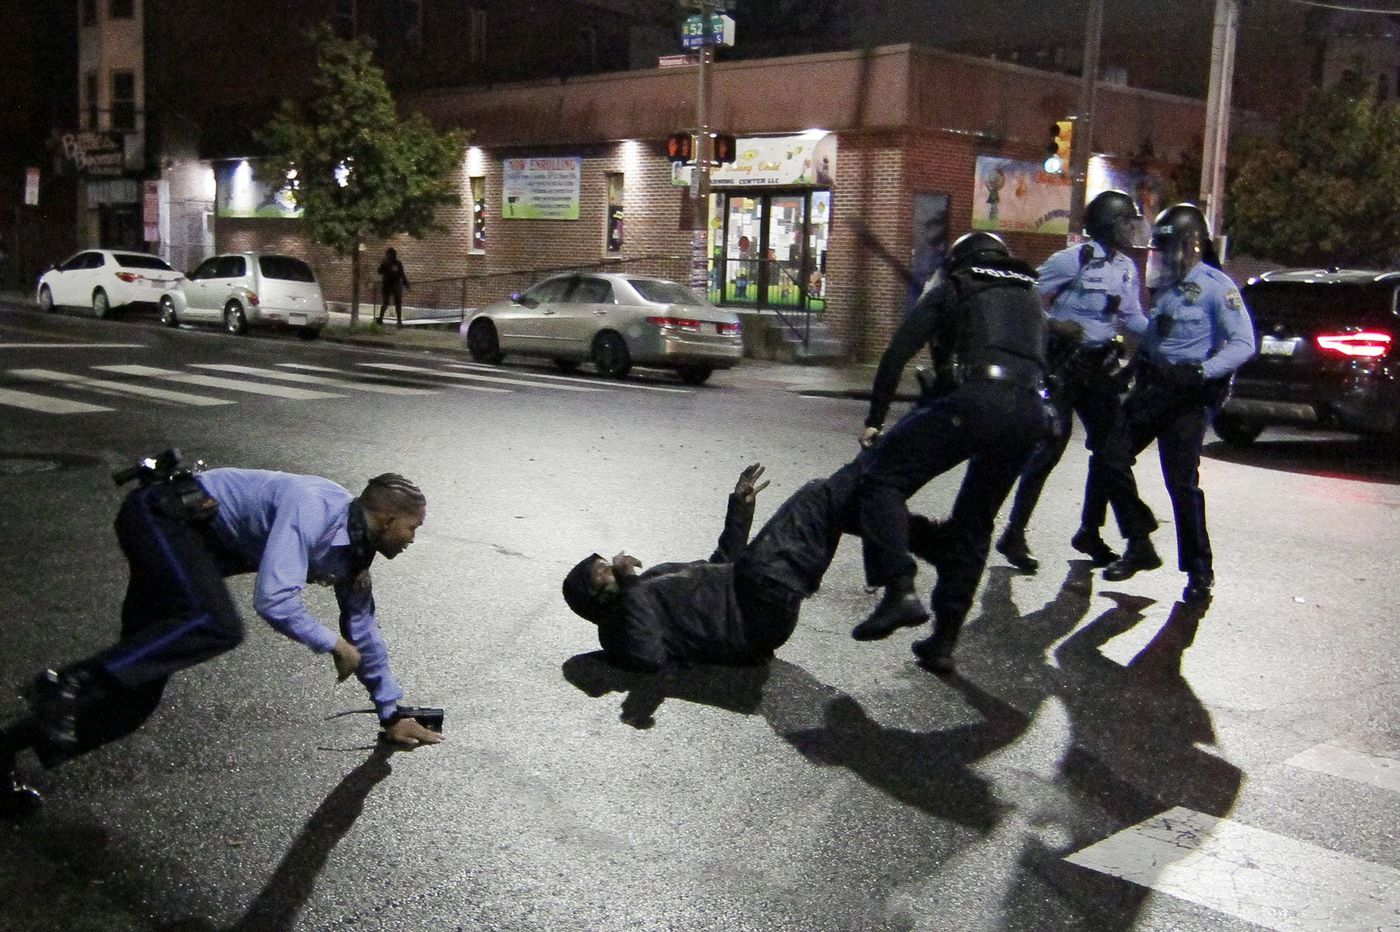 Fatal police shooting of Walter Wallace Jr. prompts heated overnight protests in West Philly